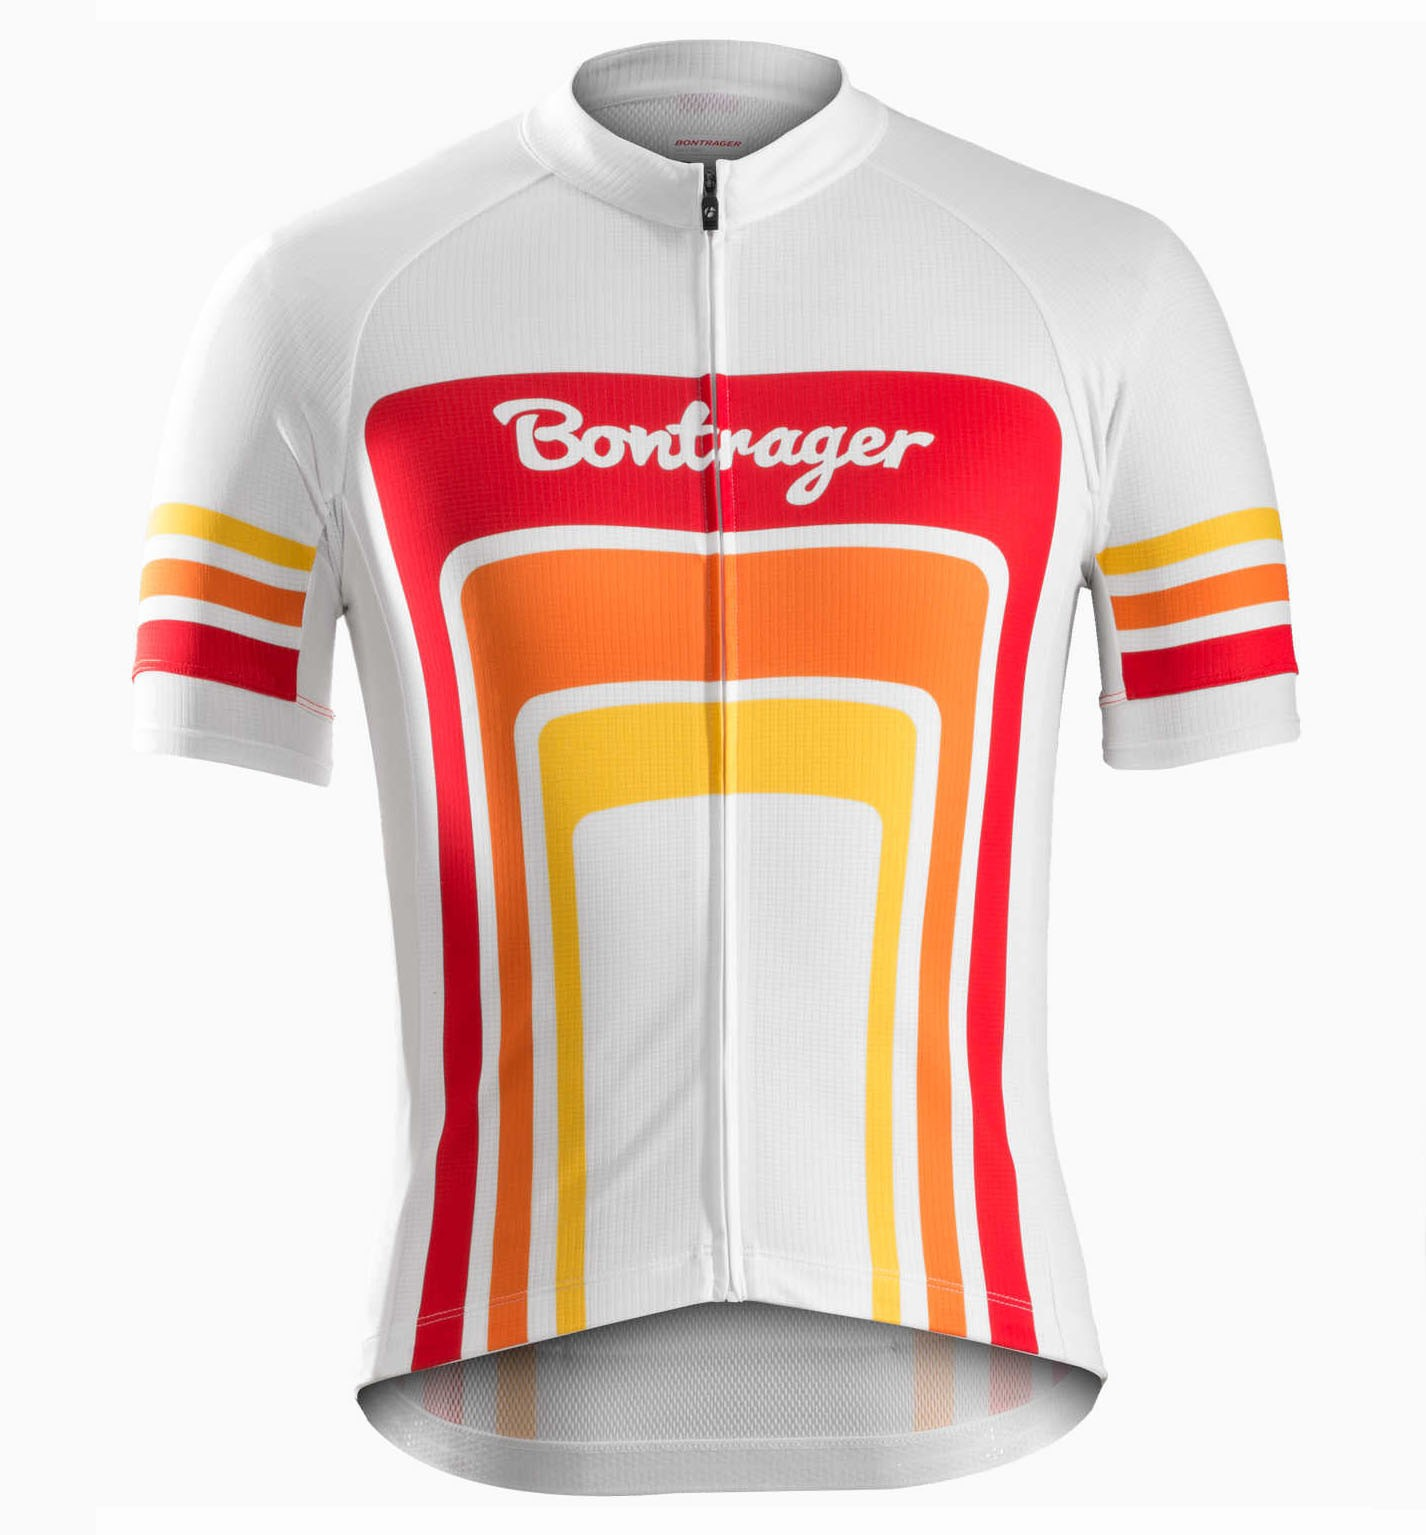 2016 Bontrager Santa Cruz 1980 White And Red Cycling Jersey 8ffe6be10